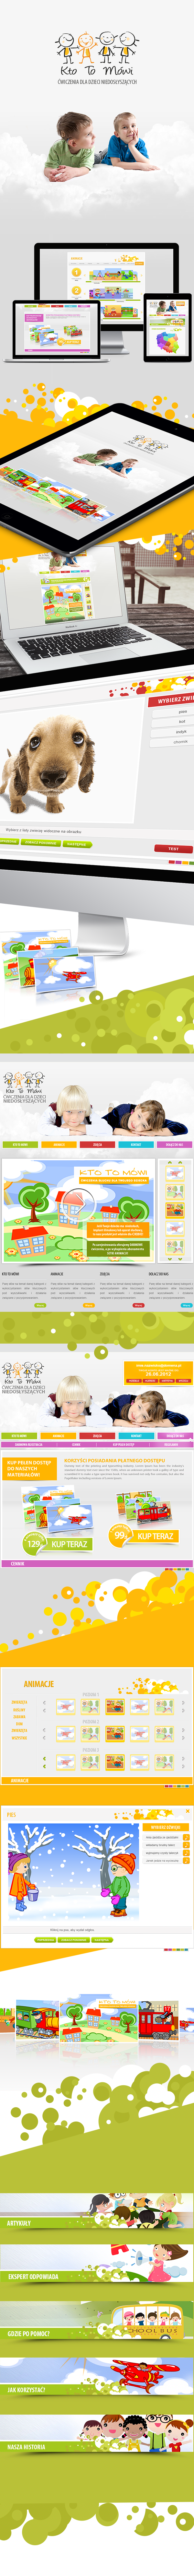 Mobile Page tablet page www Website cartoon kids illustrations